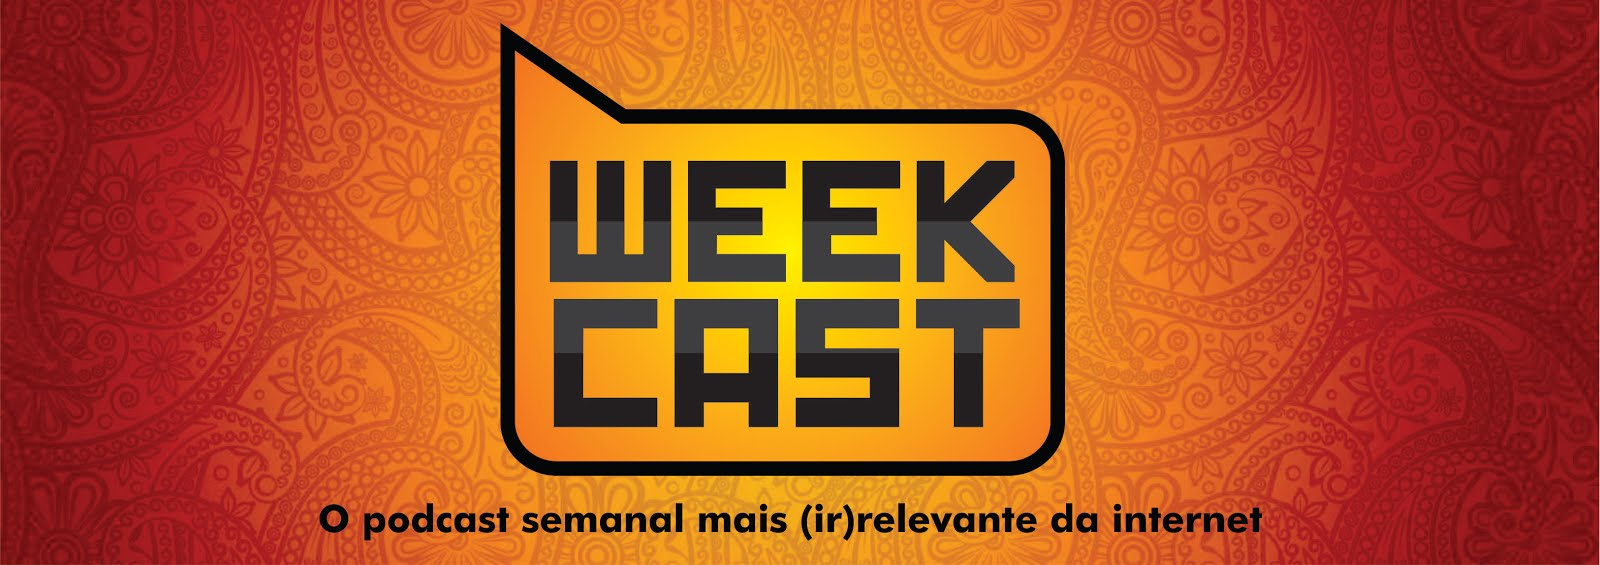 Weekcast - O Podcast mais (ir)relevante da internet